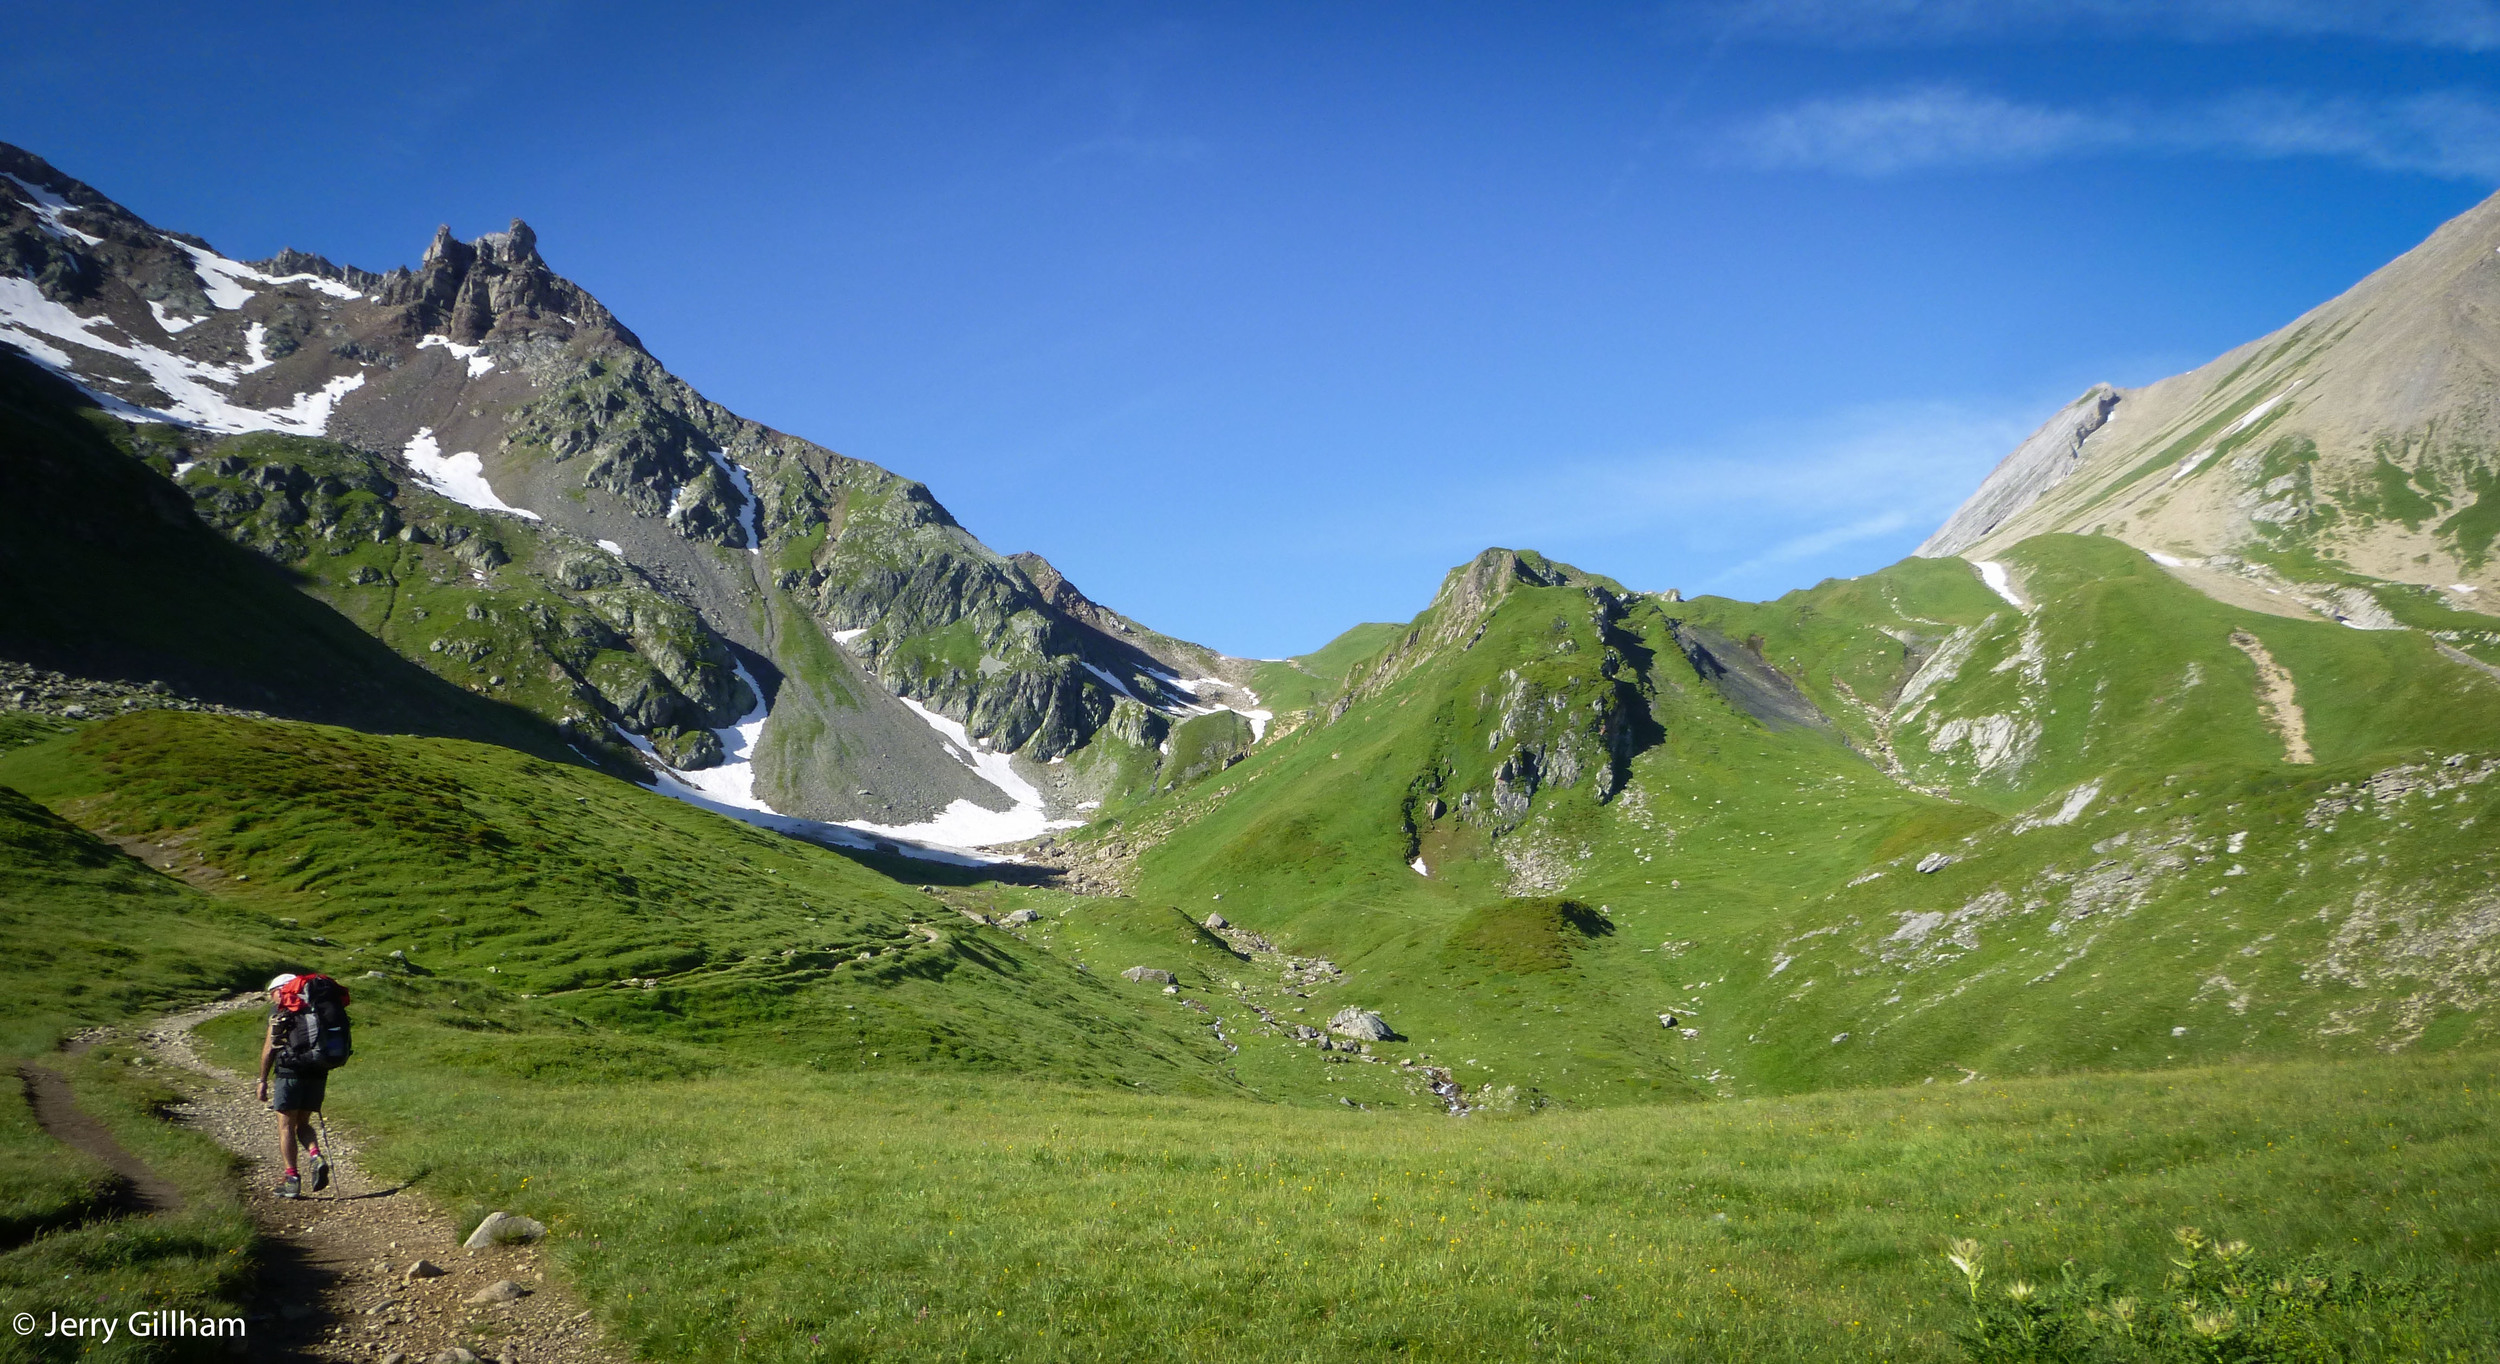 Looking up toward Col du Bonhomme.